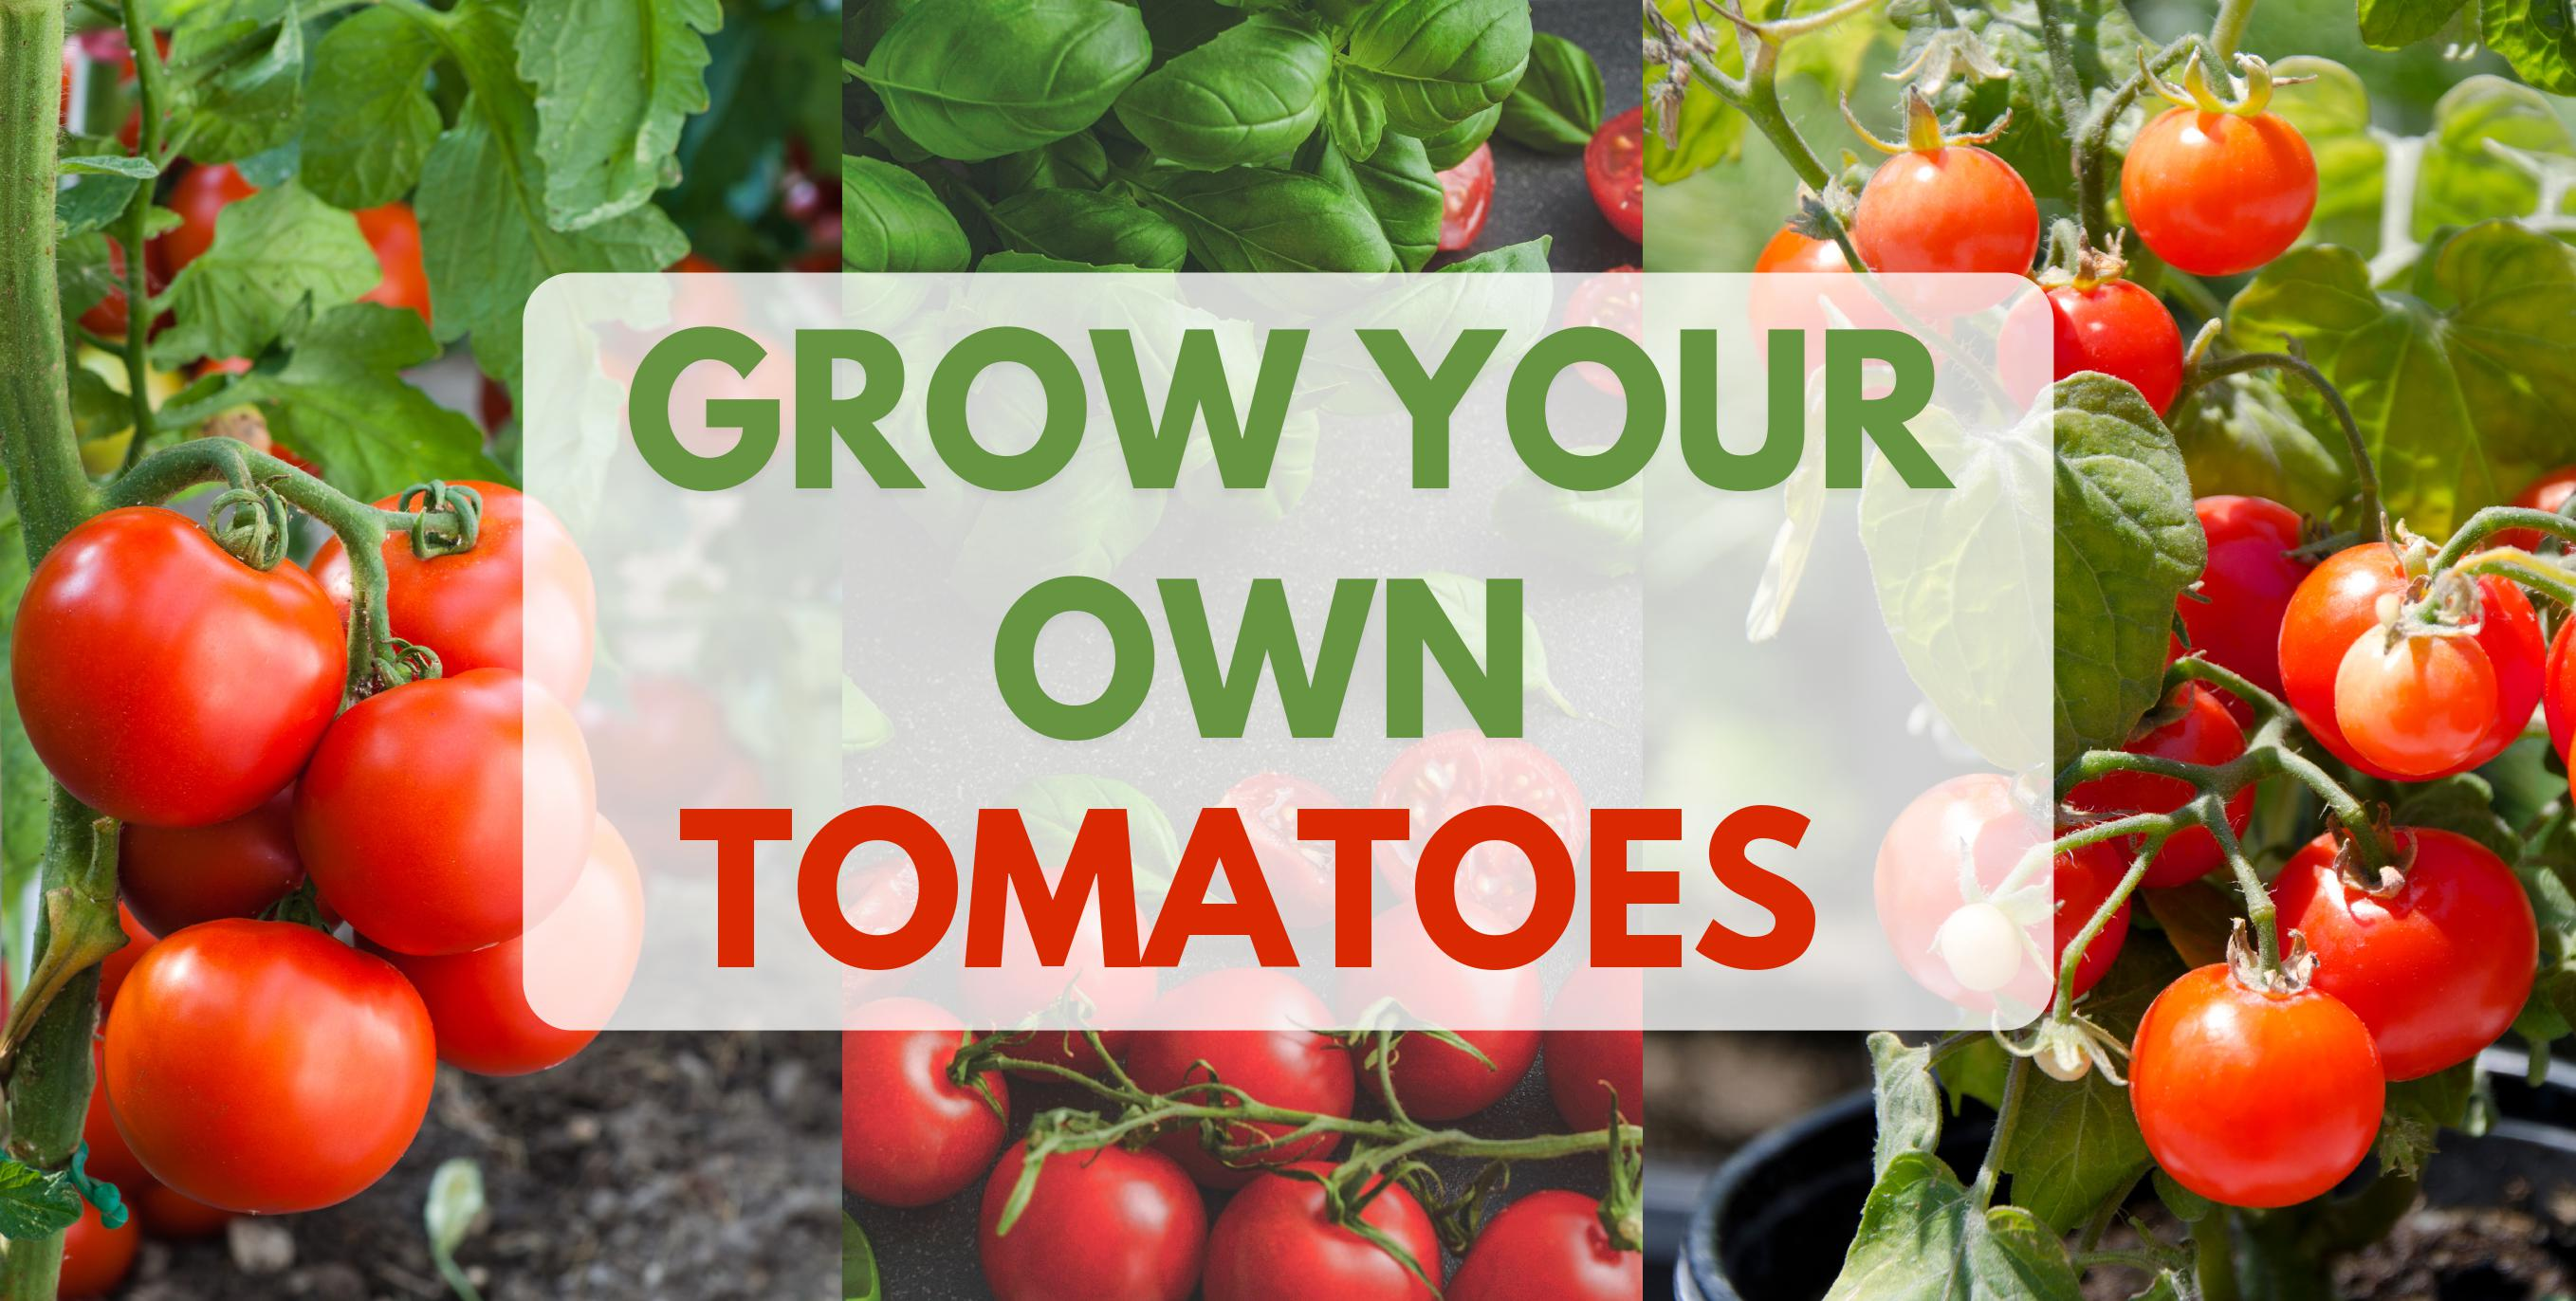 Grow your own tomatoes, 3 bright images of tomatoes - grow your own link